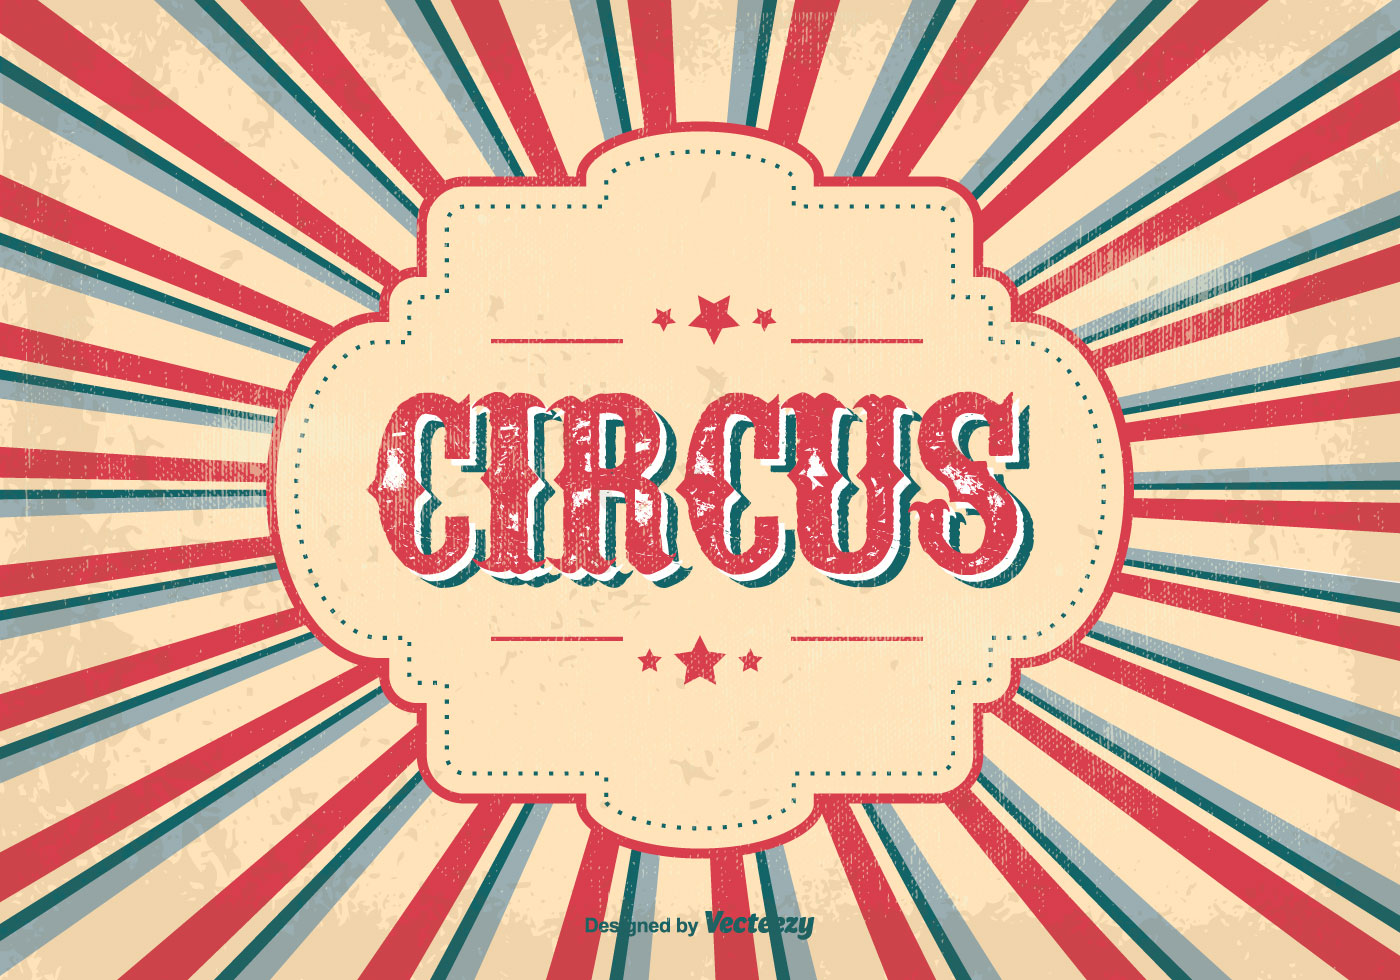 Vintage Circus Poster Background Vintage Circus Poster ...